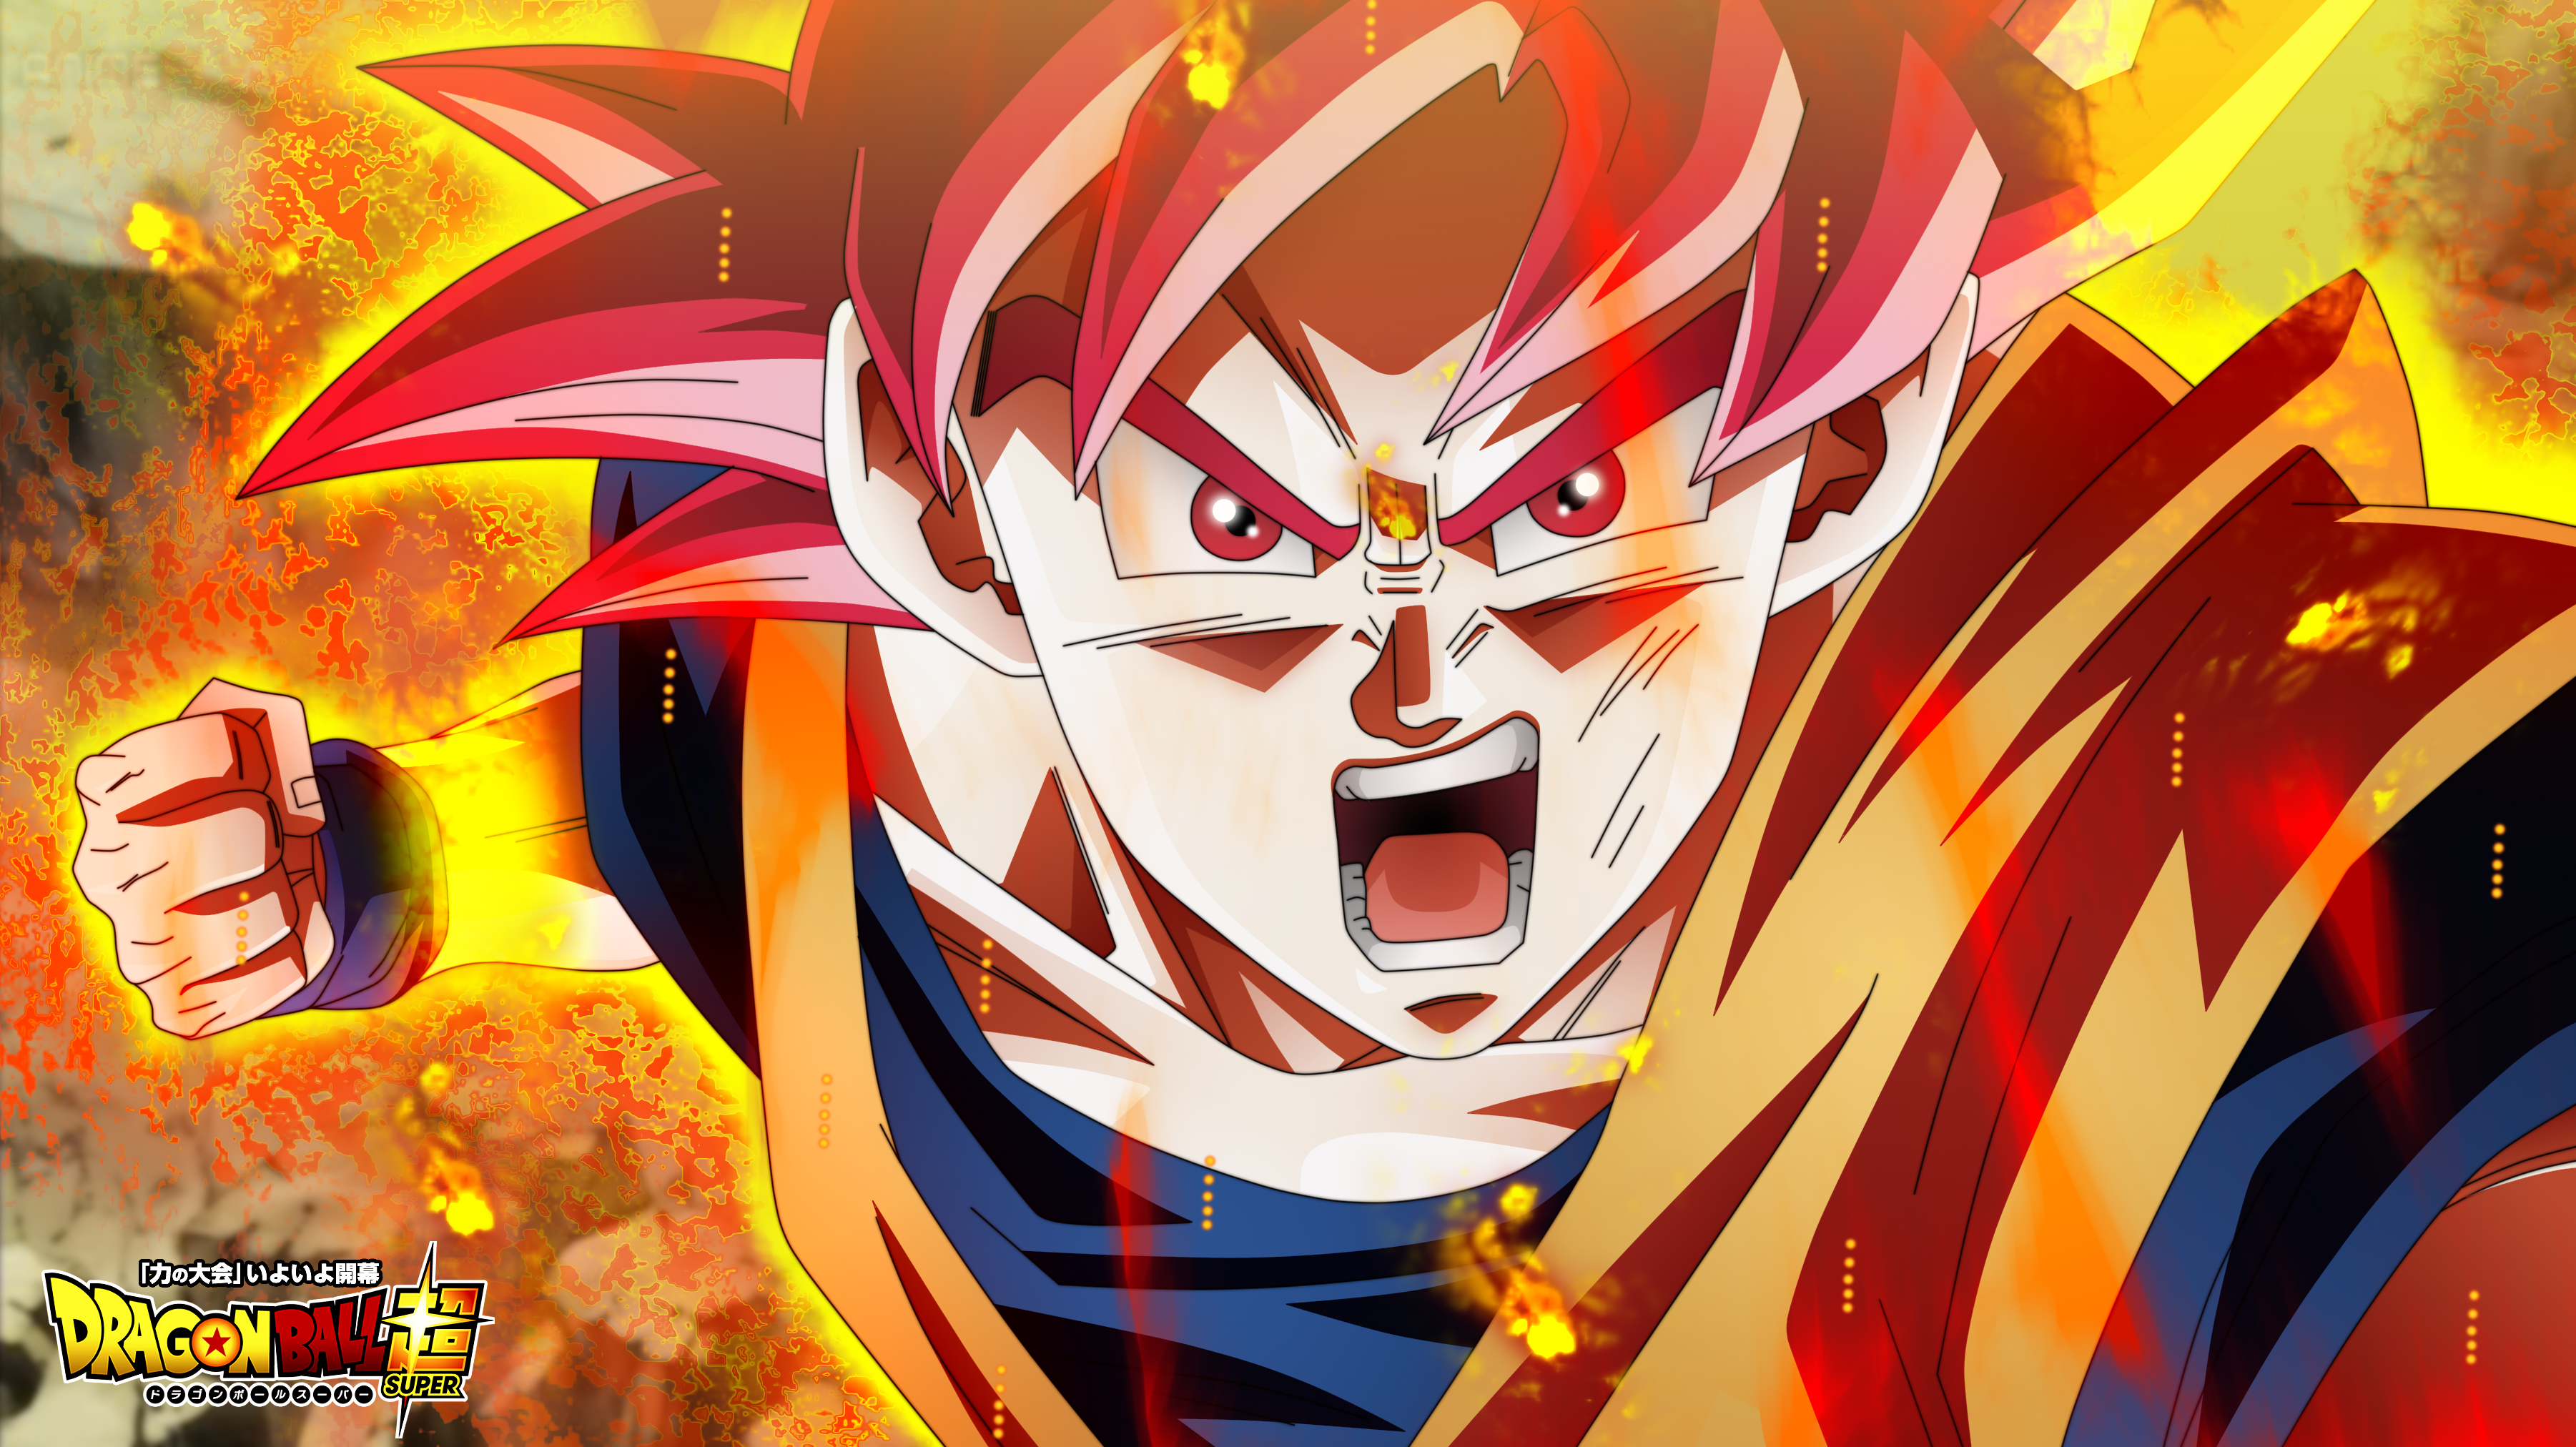 SSG PC wallpaper Goku, Personajes de dragon ball, Dibujos